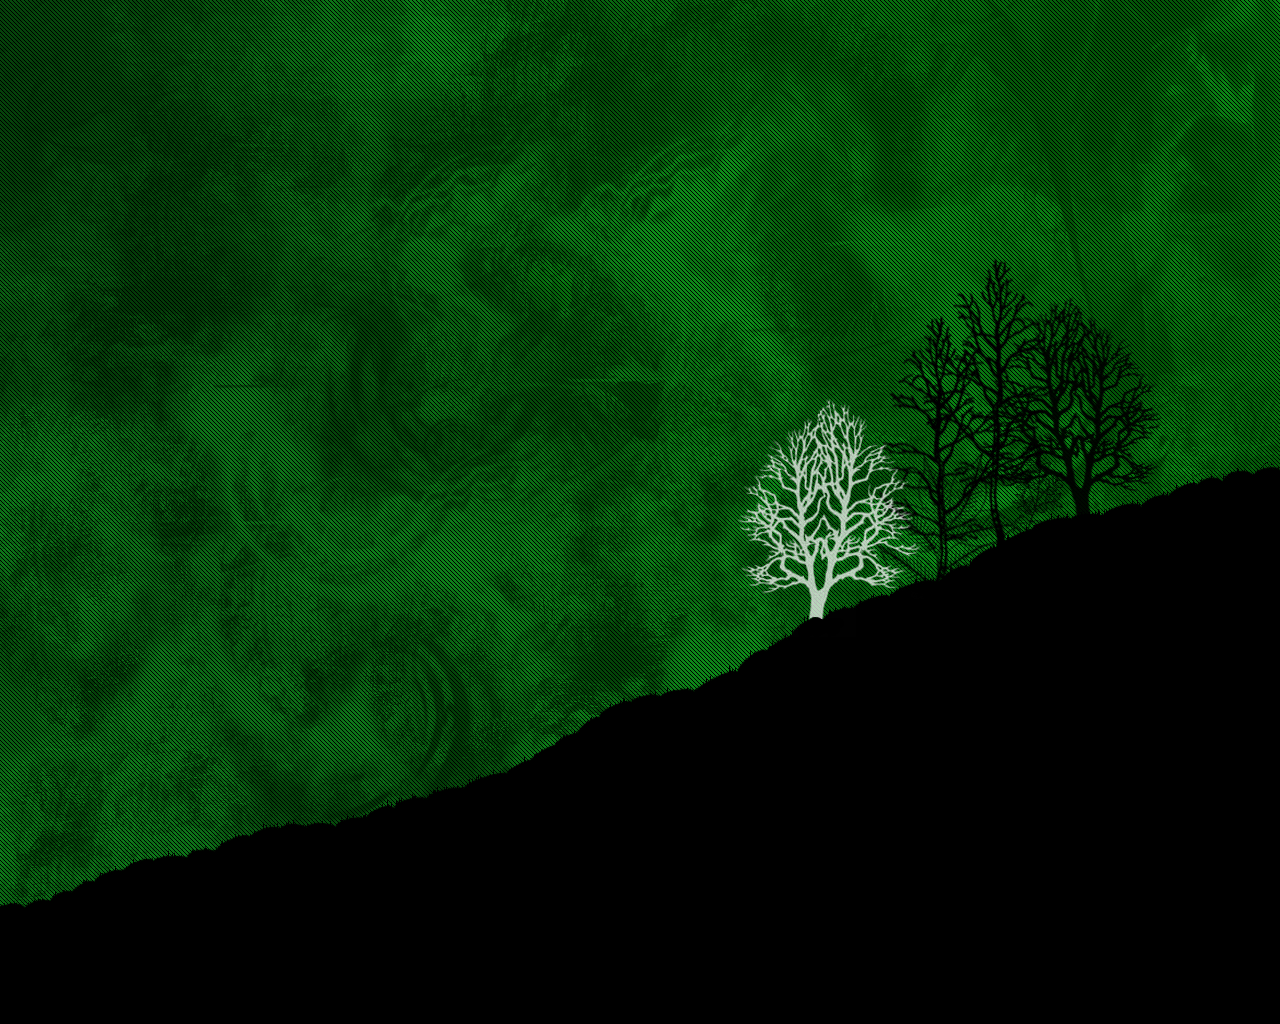 1280x1024 green and black wallpaper | Cool Wallpaper